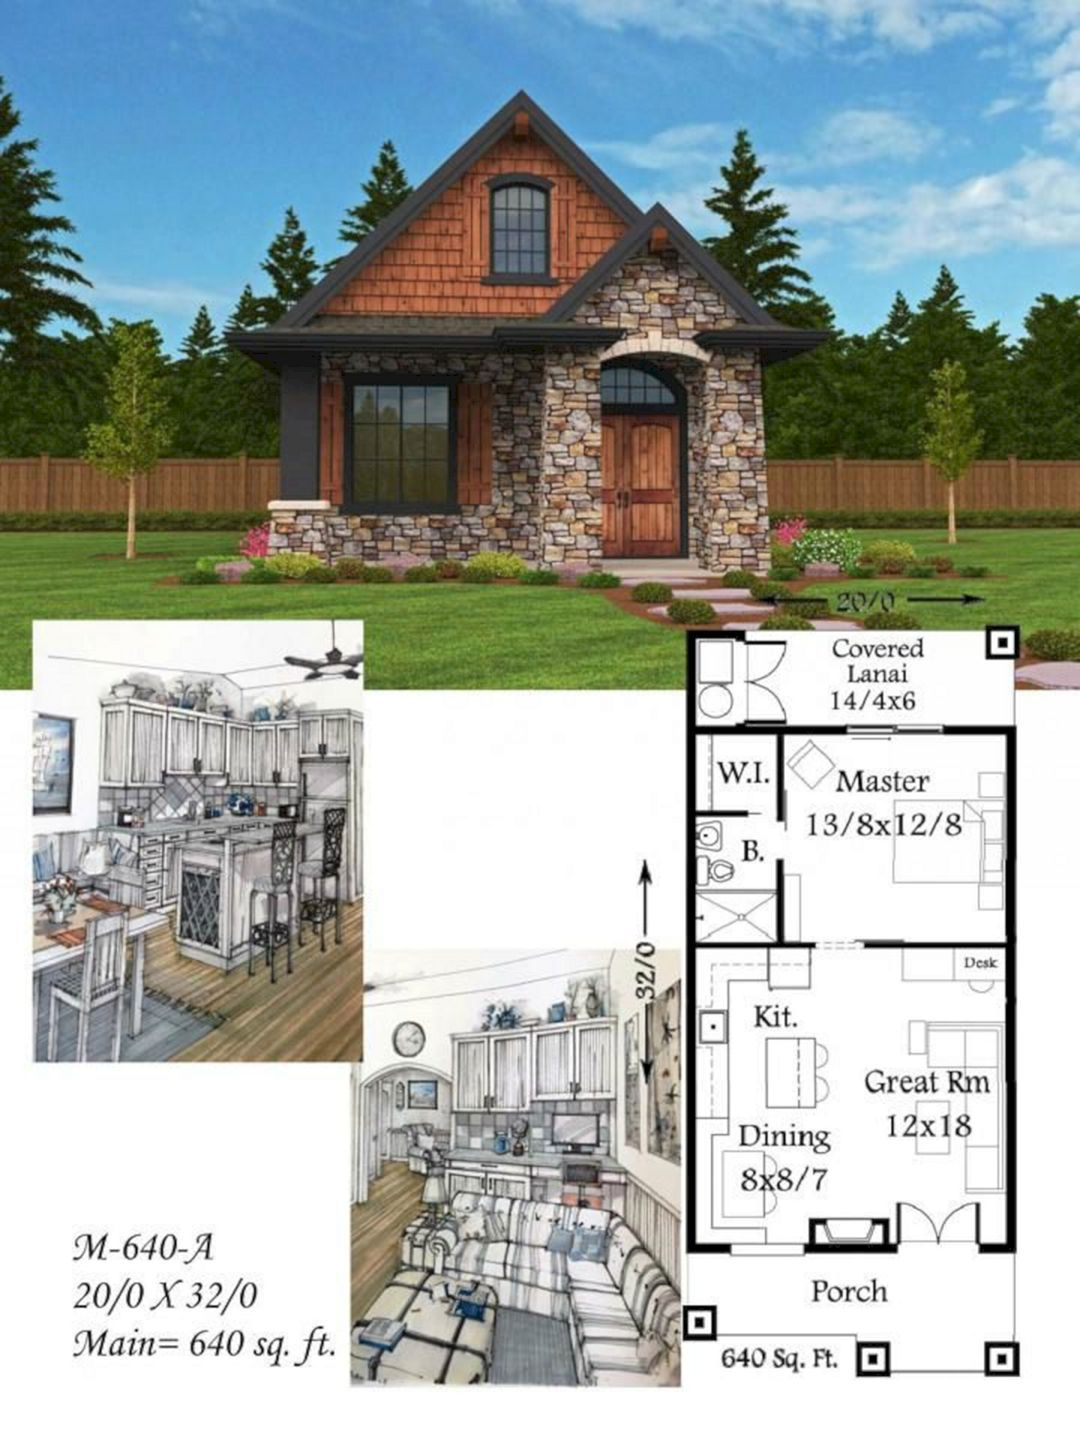 37 Best Tiny Home Designs Collections For Life Better Than Before Tiny House Plans Cottage Plan Tiny House Design